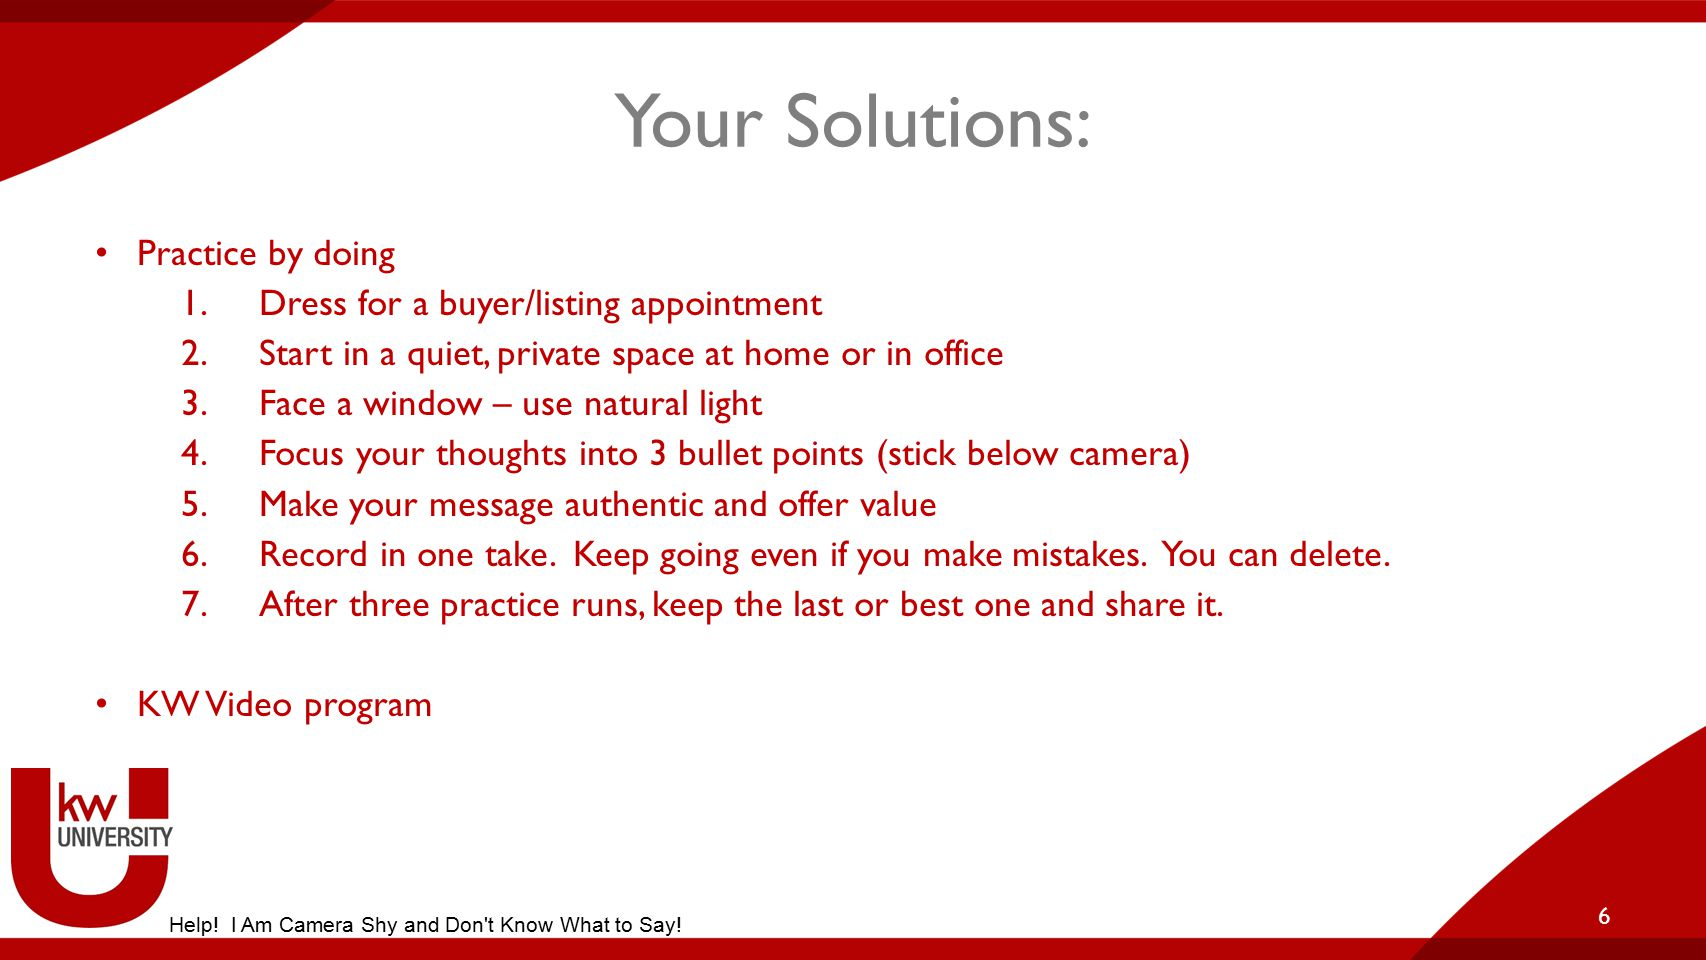 Your Solutions: Practice by doing 1.Dress for a buyer/listing appointment 2.Start in a quiet, private space at home or in office 3.Face a window – use natural light 4.Focus your thoughts into 3 bullet points (stick below camera) 5.Make your message authentic and offer value 6.Record in one take.